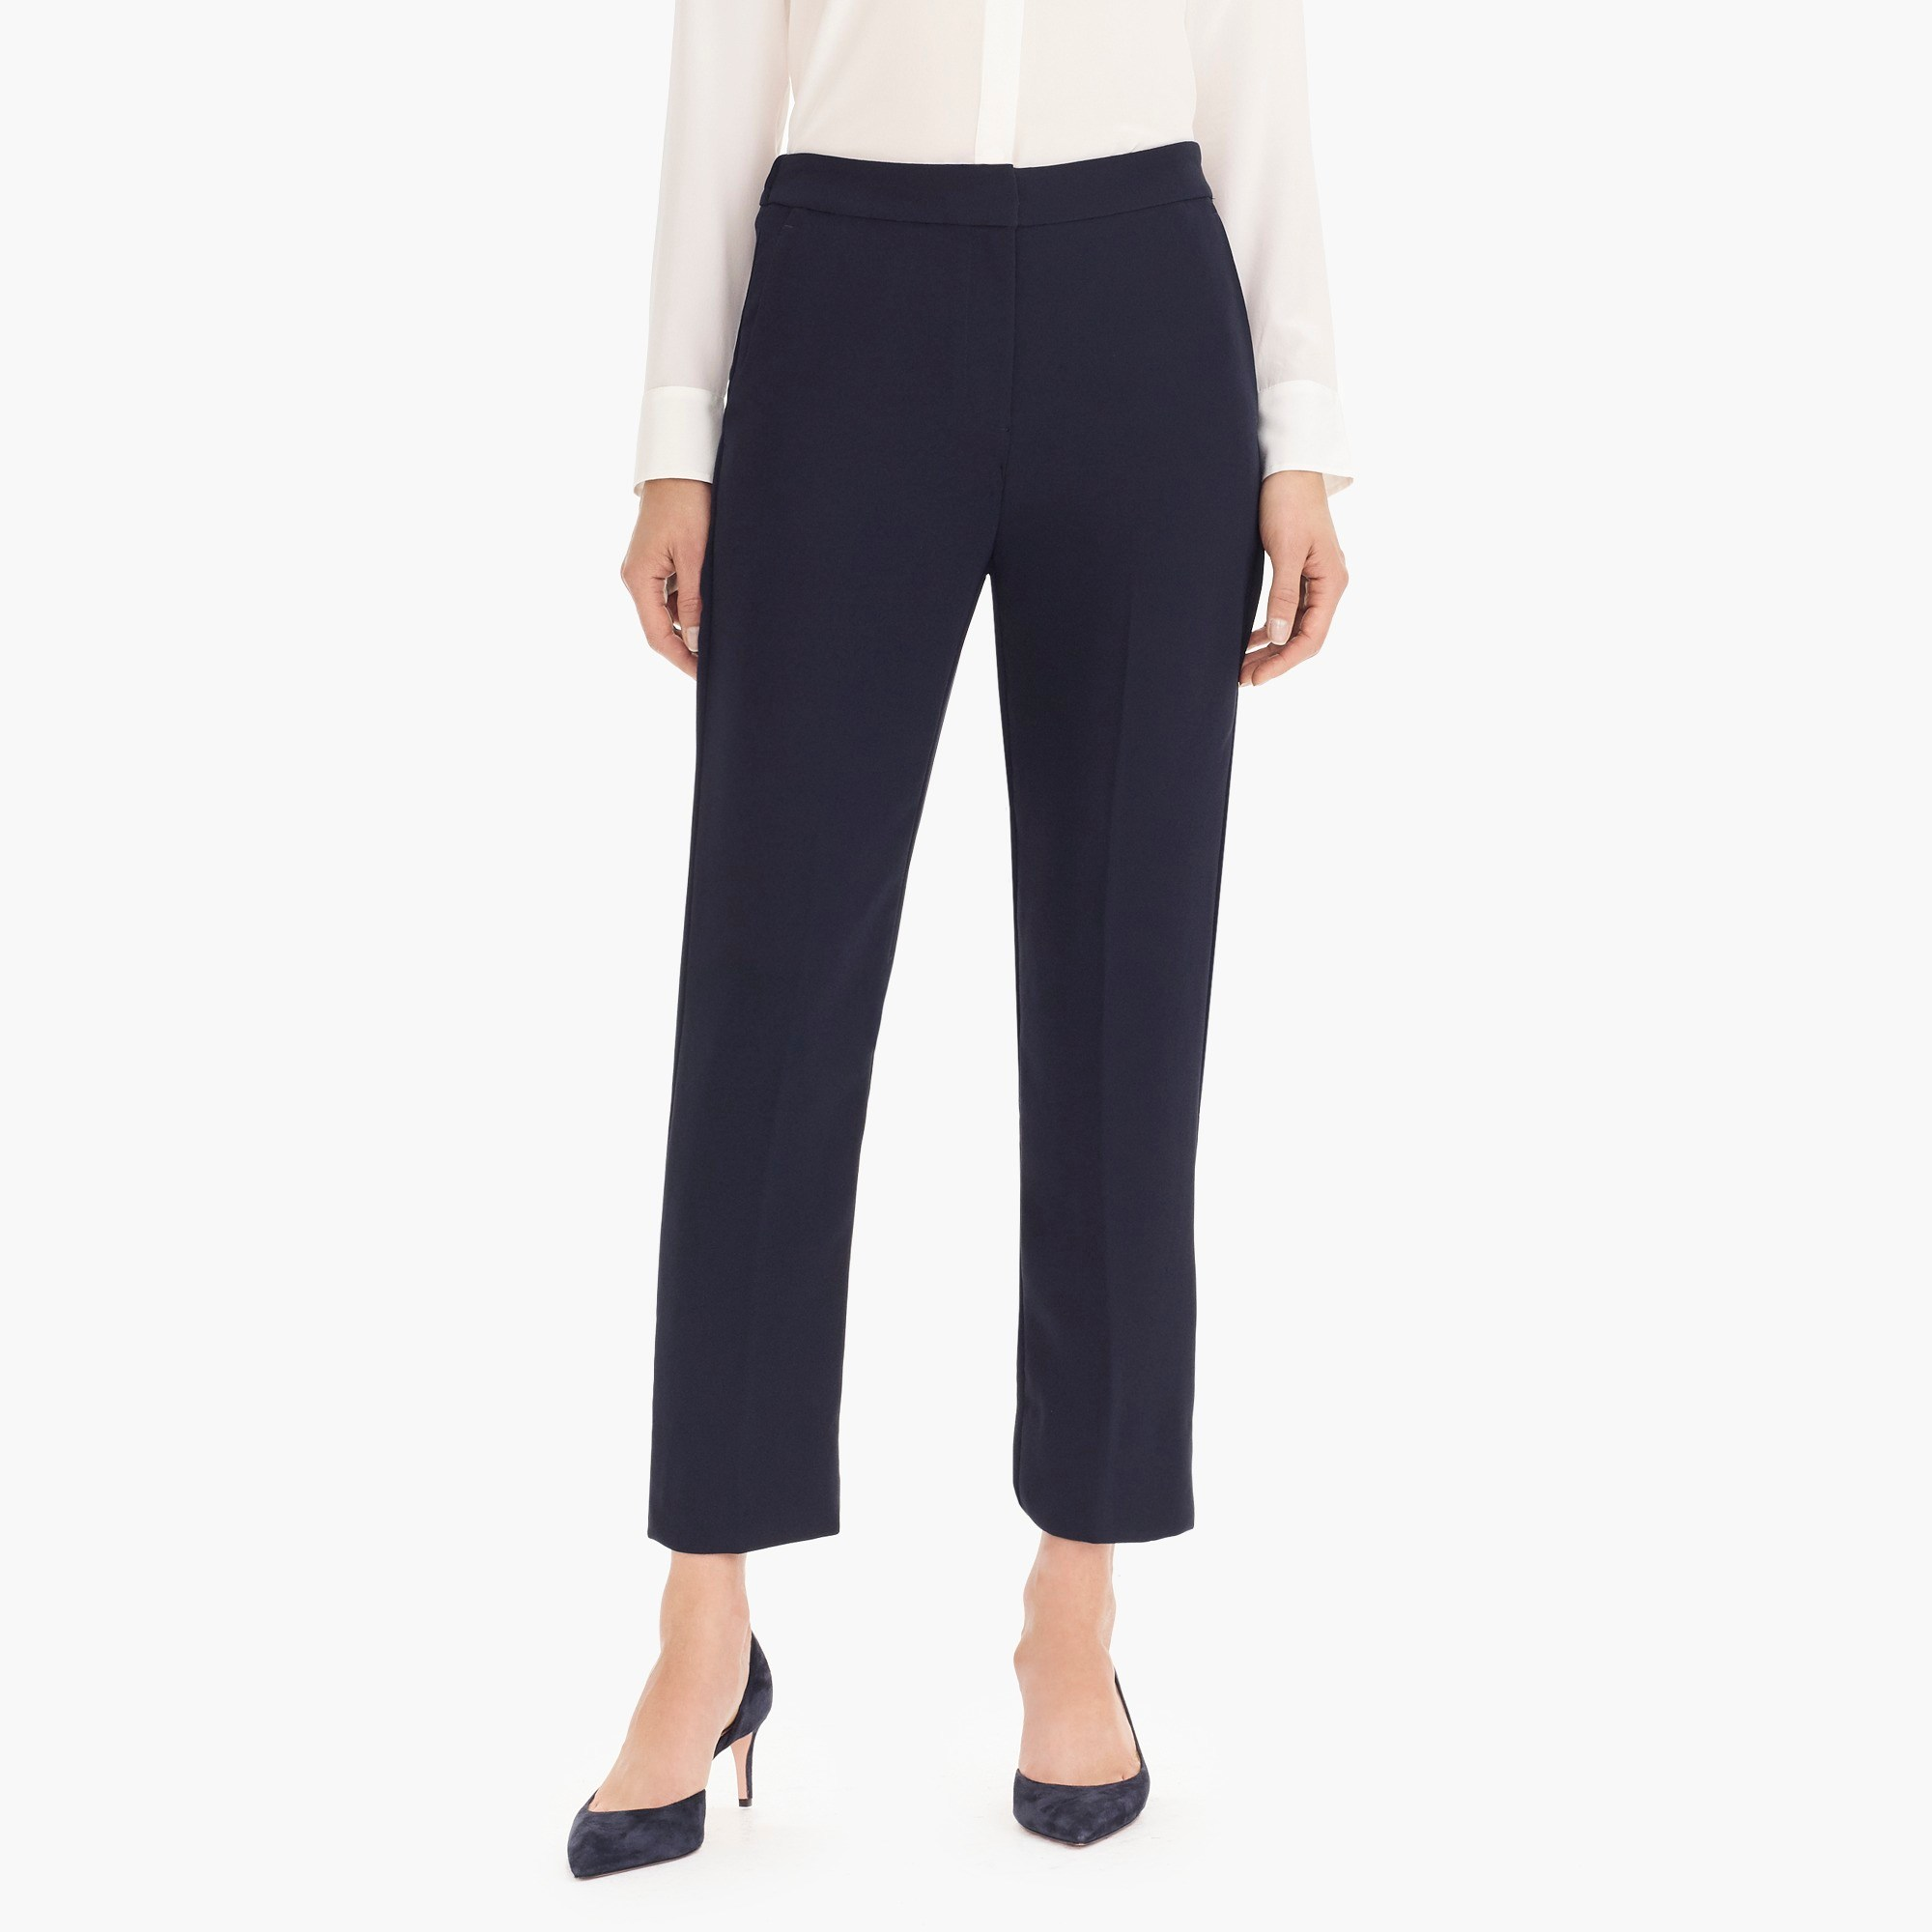 Pull-on easy pant in matte crepe - Women's Pants | J.Crew